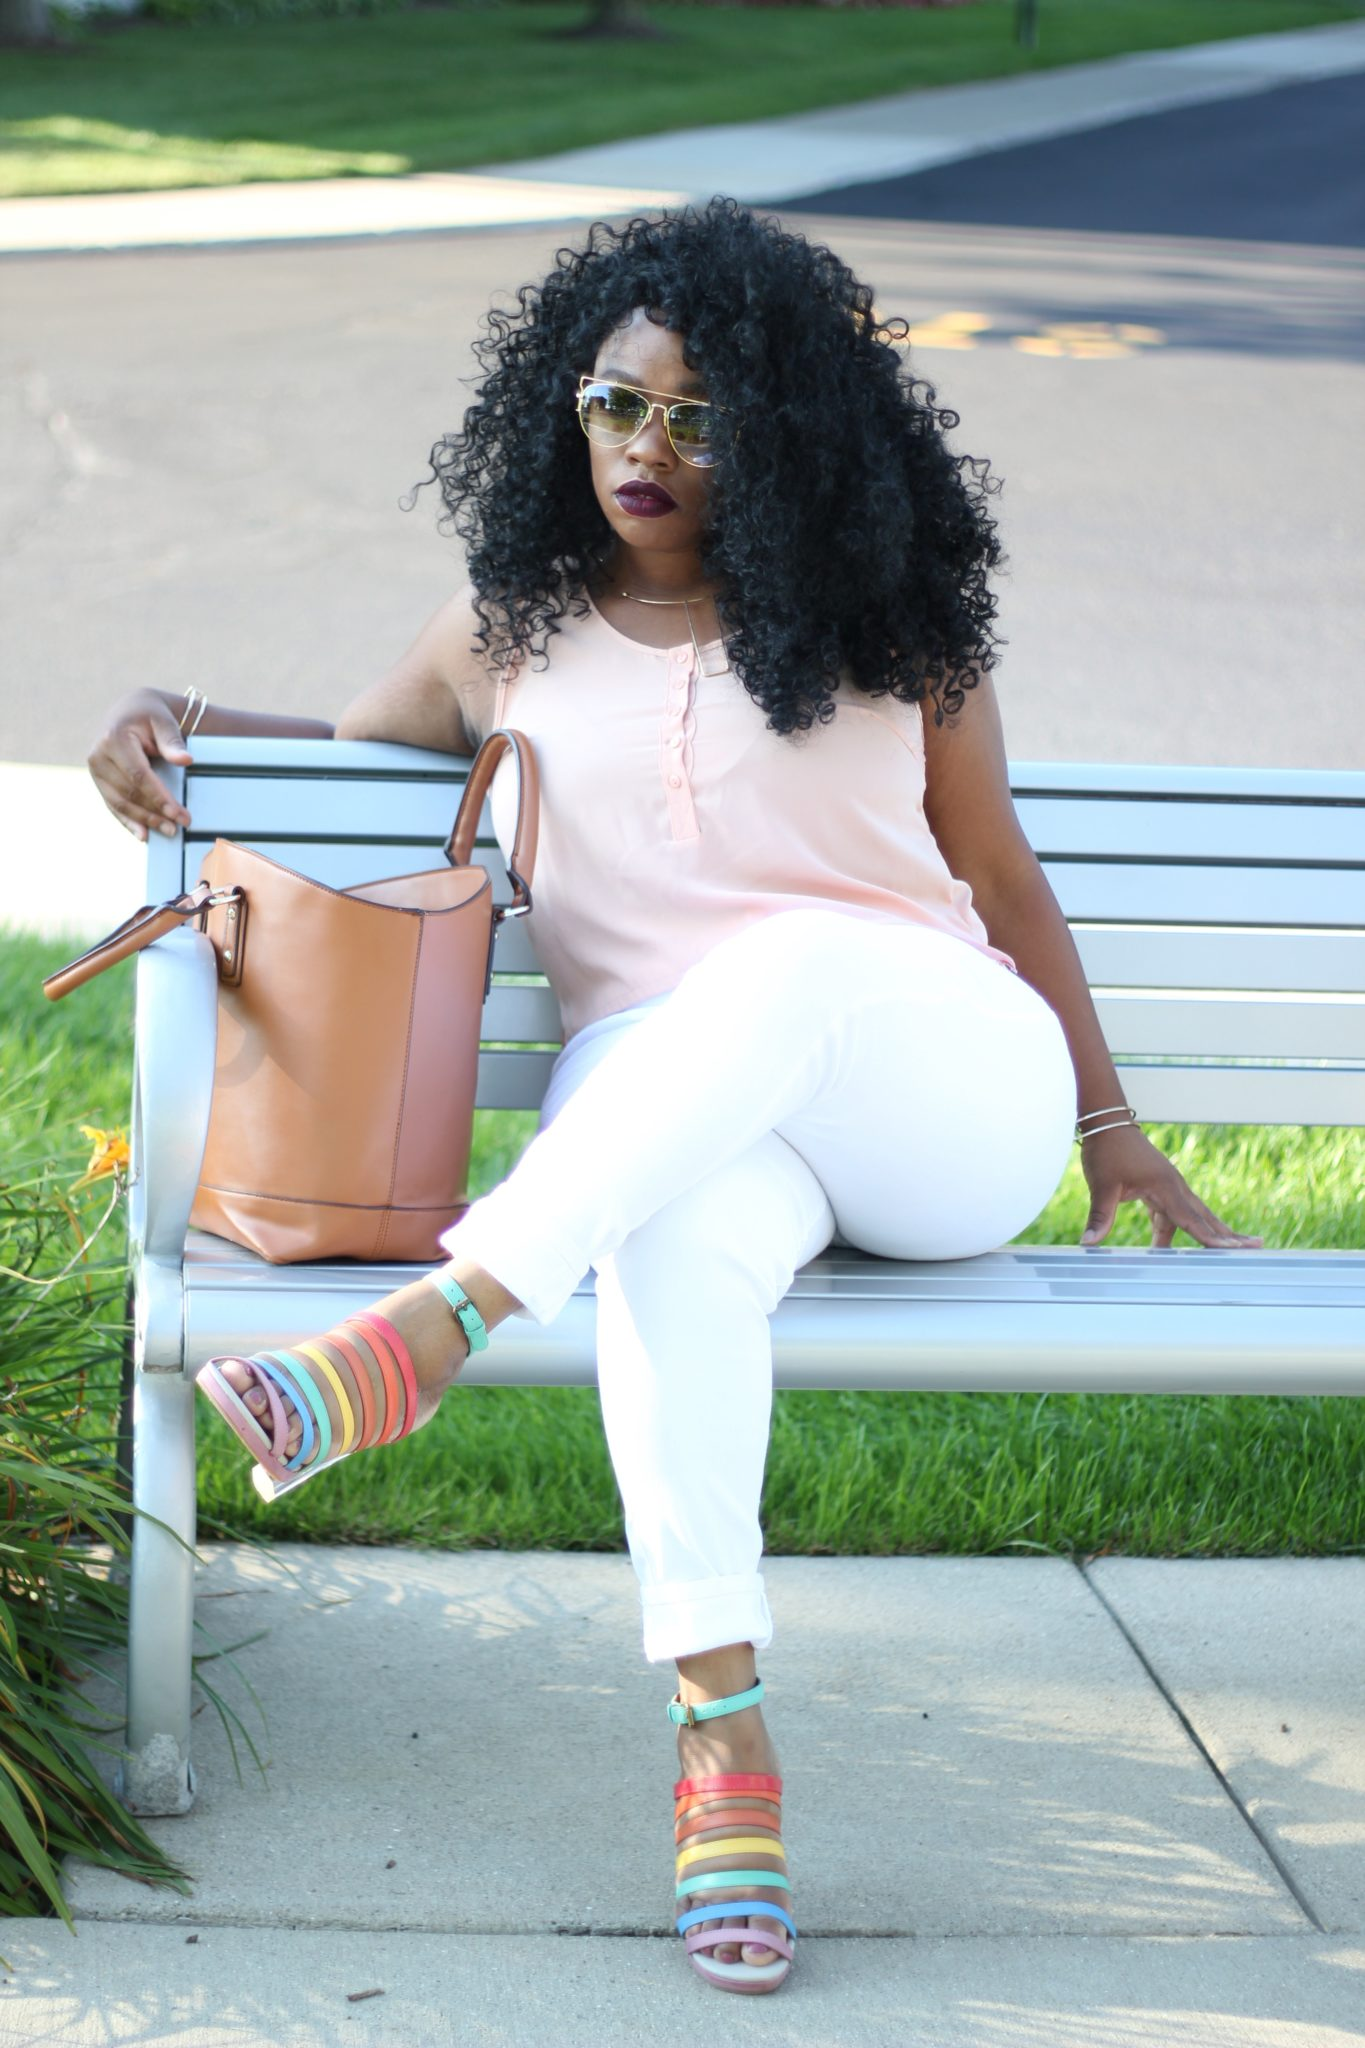 img_7088 Living for the Weekend! Fashion Fashion Nova Forever 21 Jeffrey Campbell Shoes Justfab OOTD Styling Thrifting Uncategorized